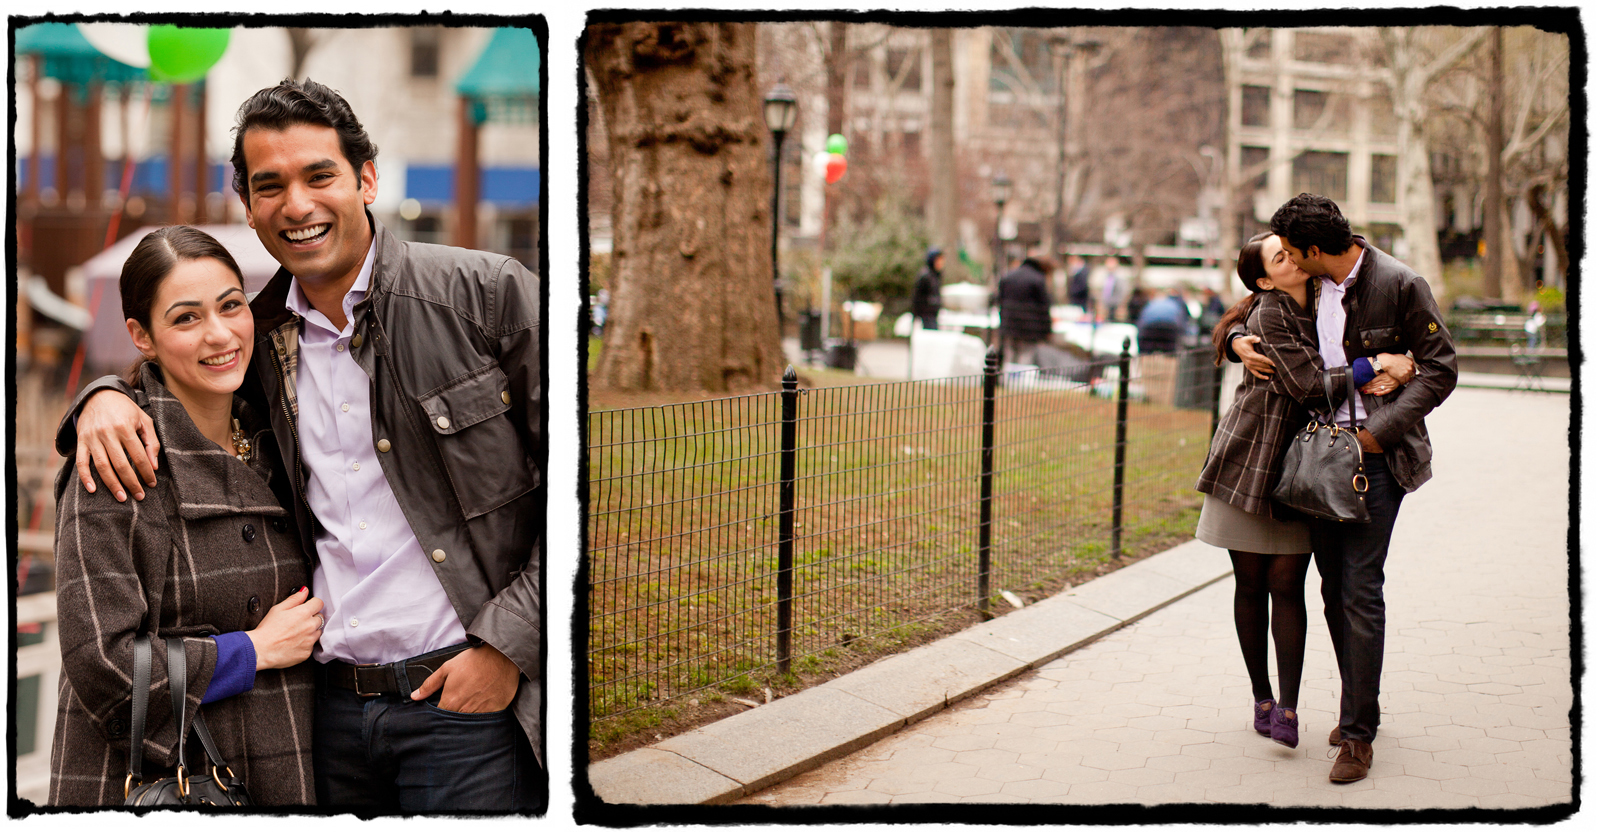 We took a few 'just engaged' portraits around the park.